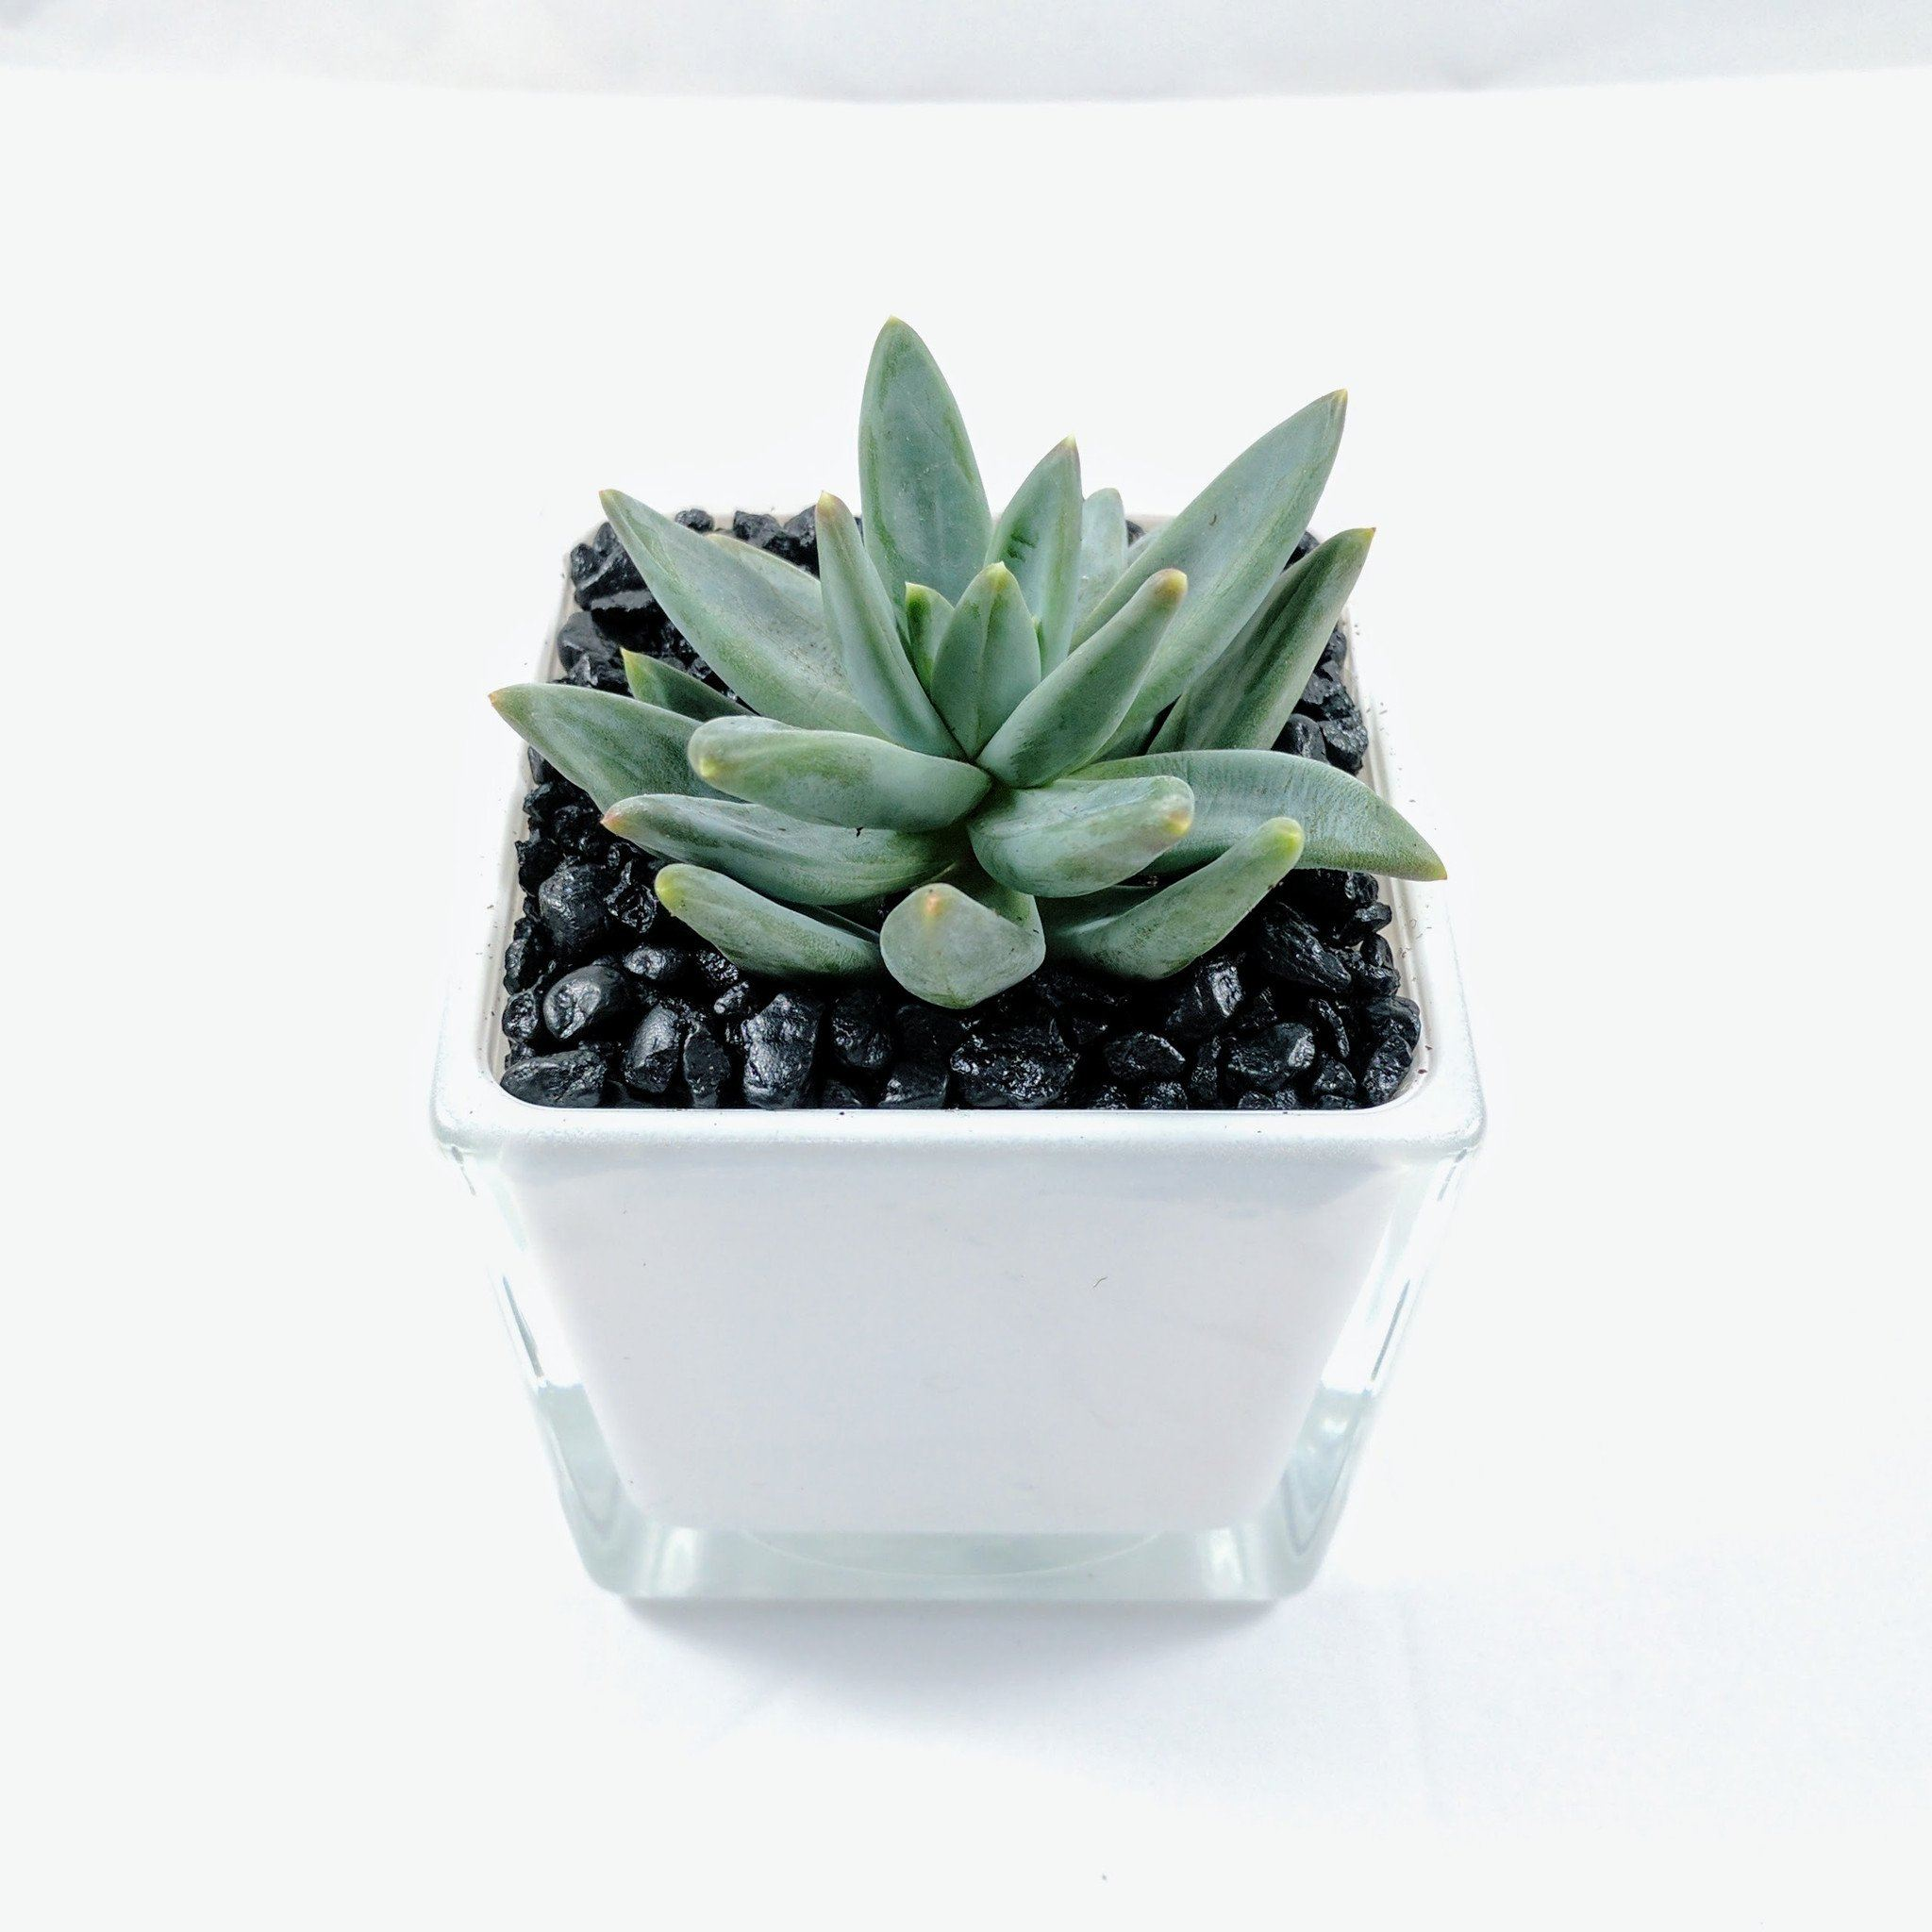 'Little Jewel' (Pachyveria Glauca) - By Succuterra | Succulents, Air Plants & Terrariums